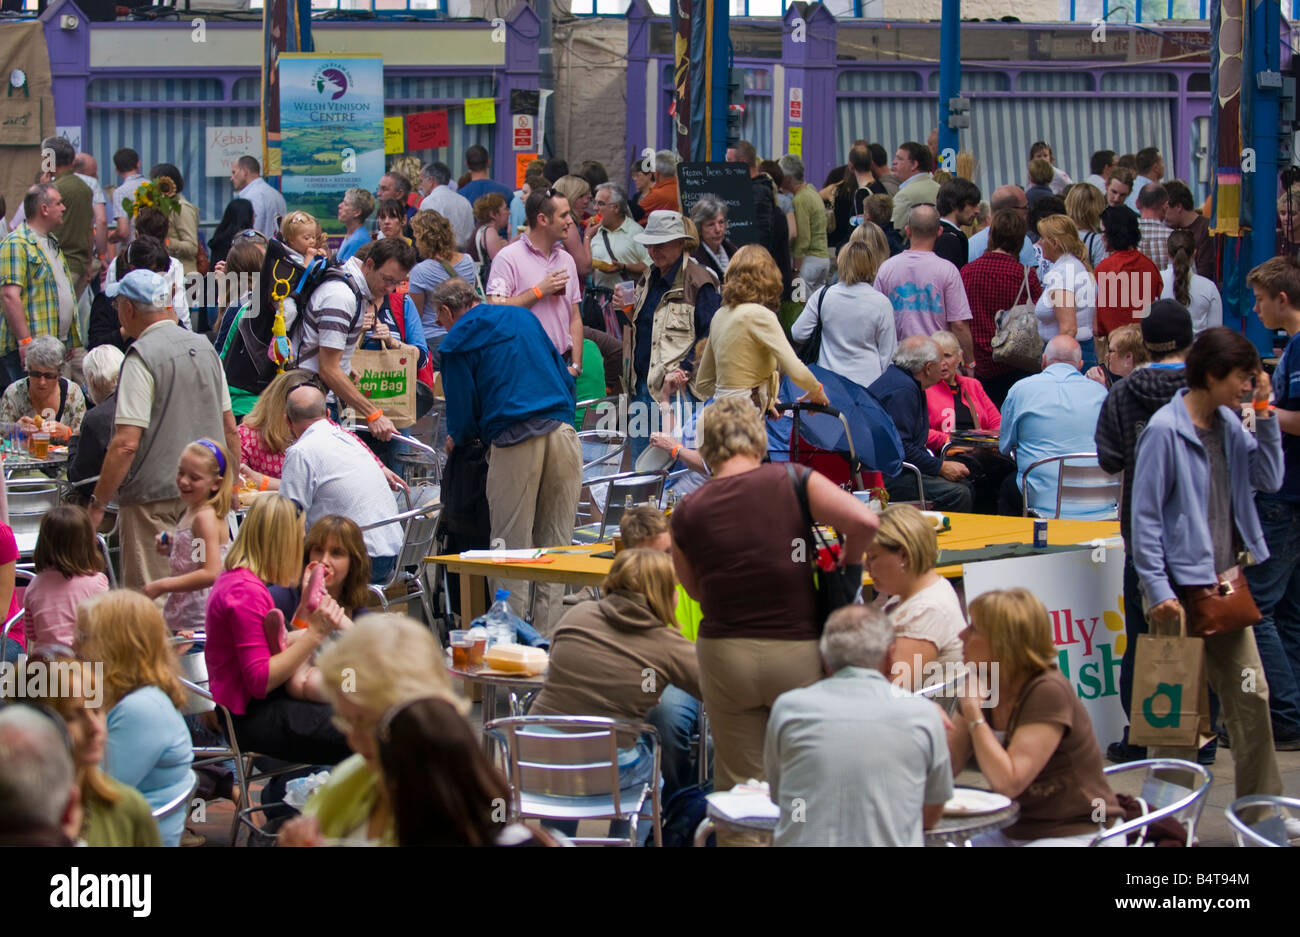 Crowds of people wander sit and browse stalls ain Market Hall at Abergavenny Food Festival Stock Photo